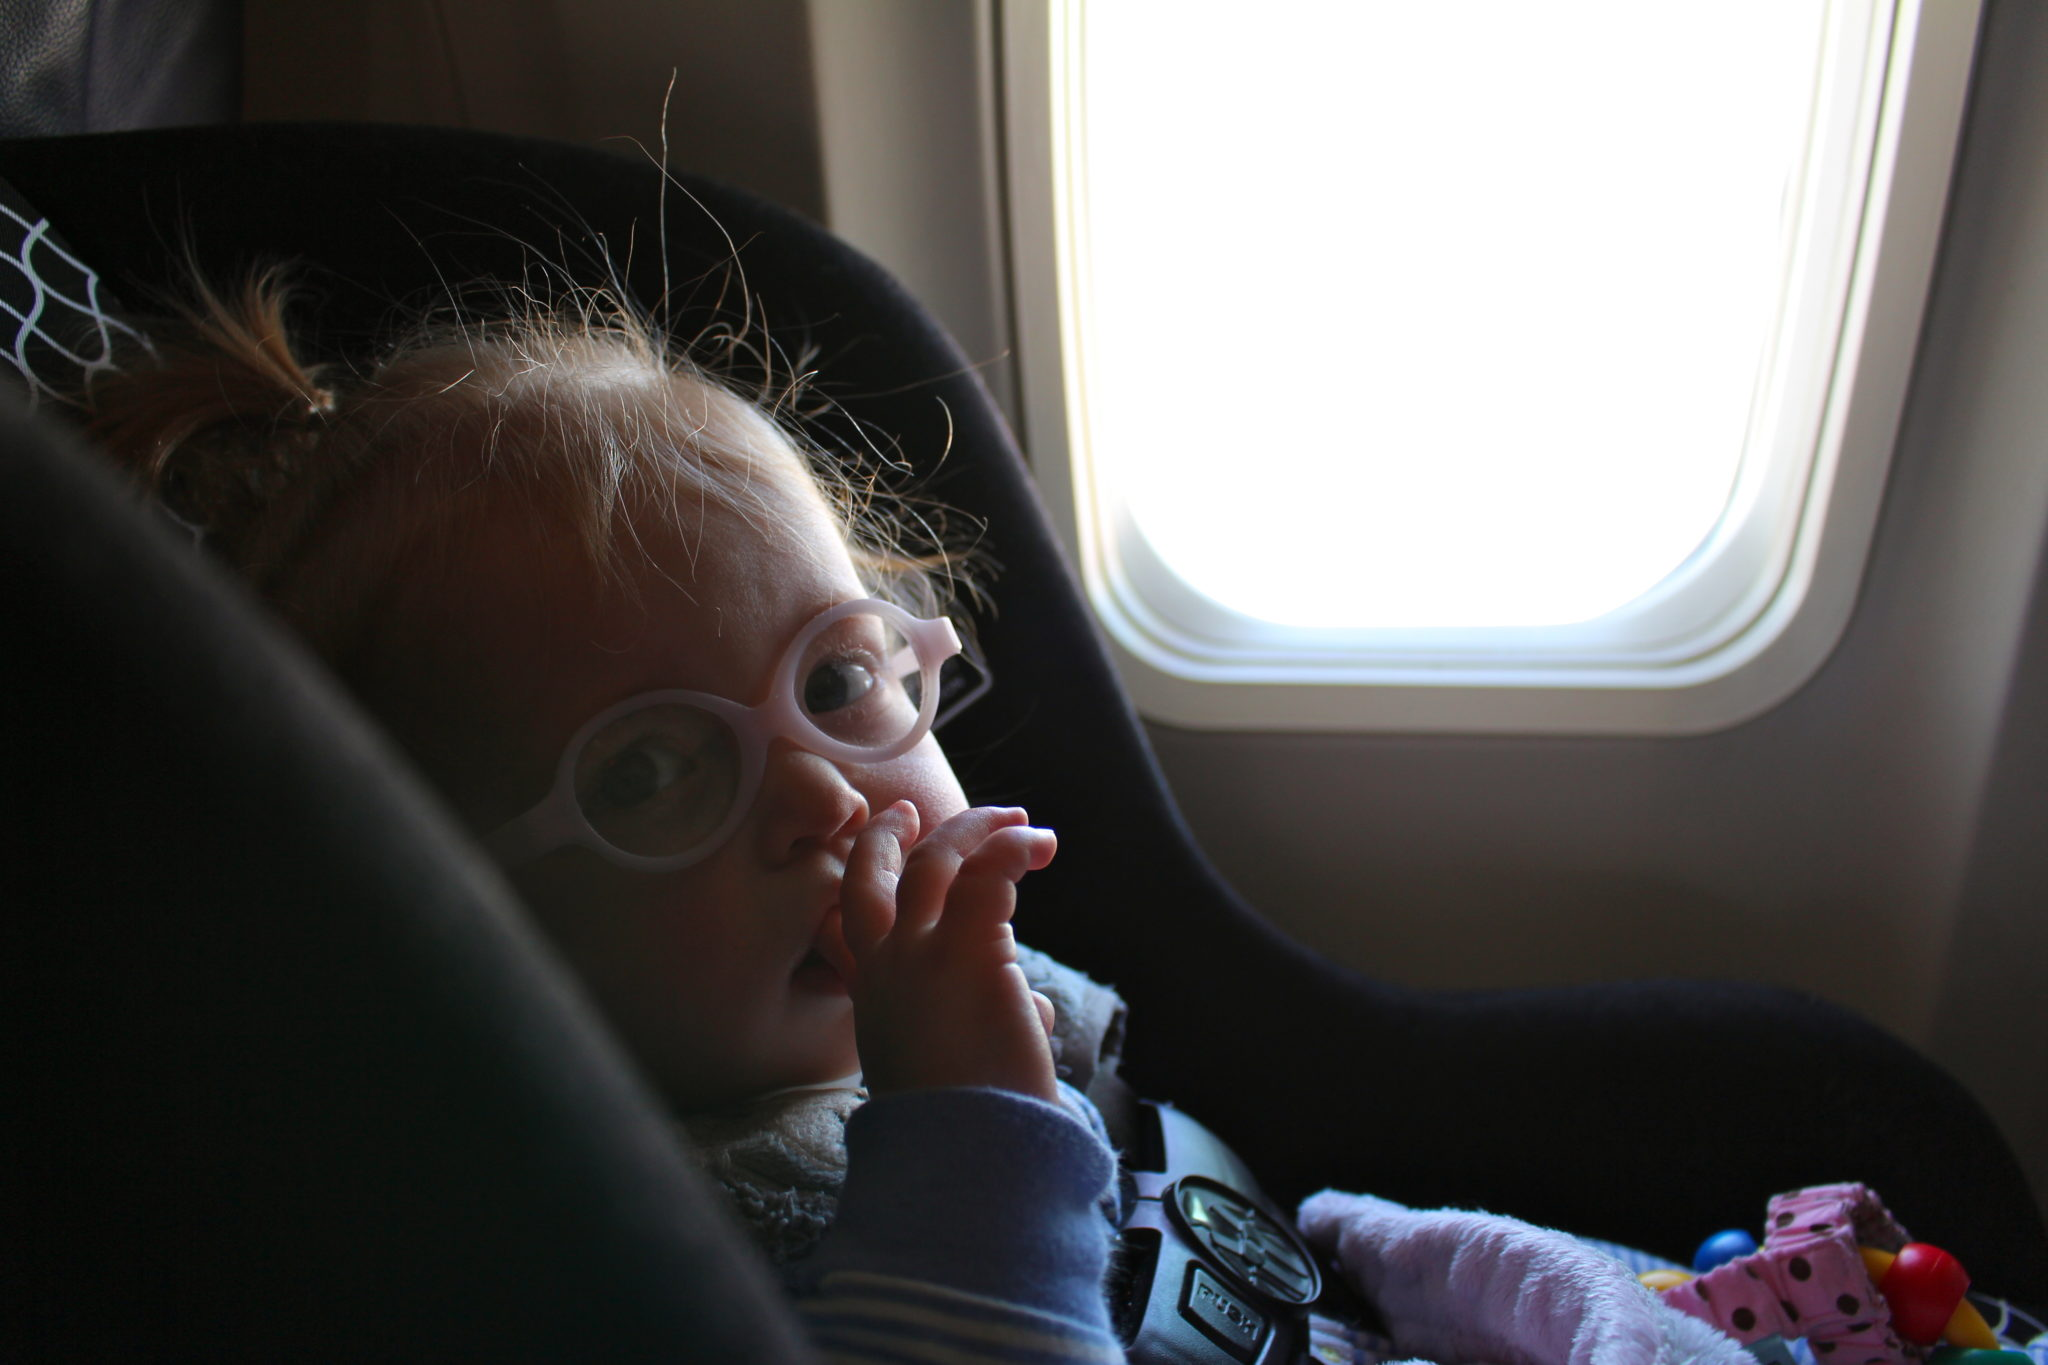 11Things You Should Never DoonaPlane